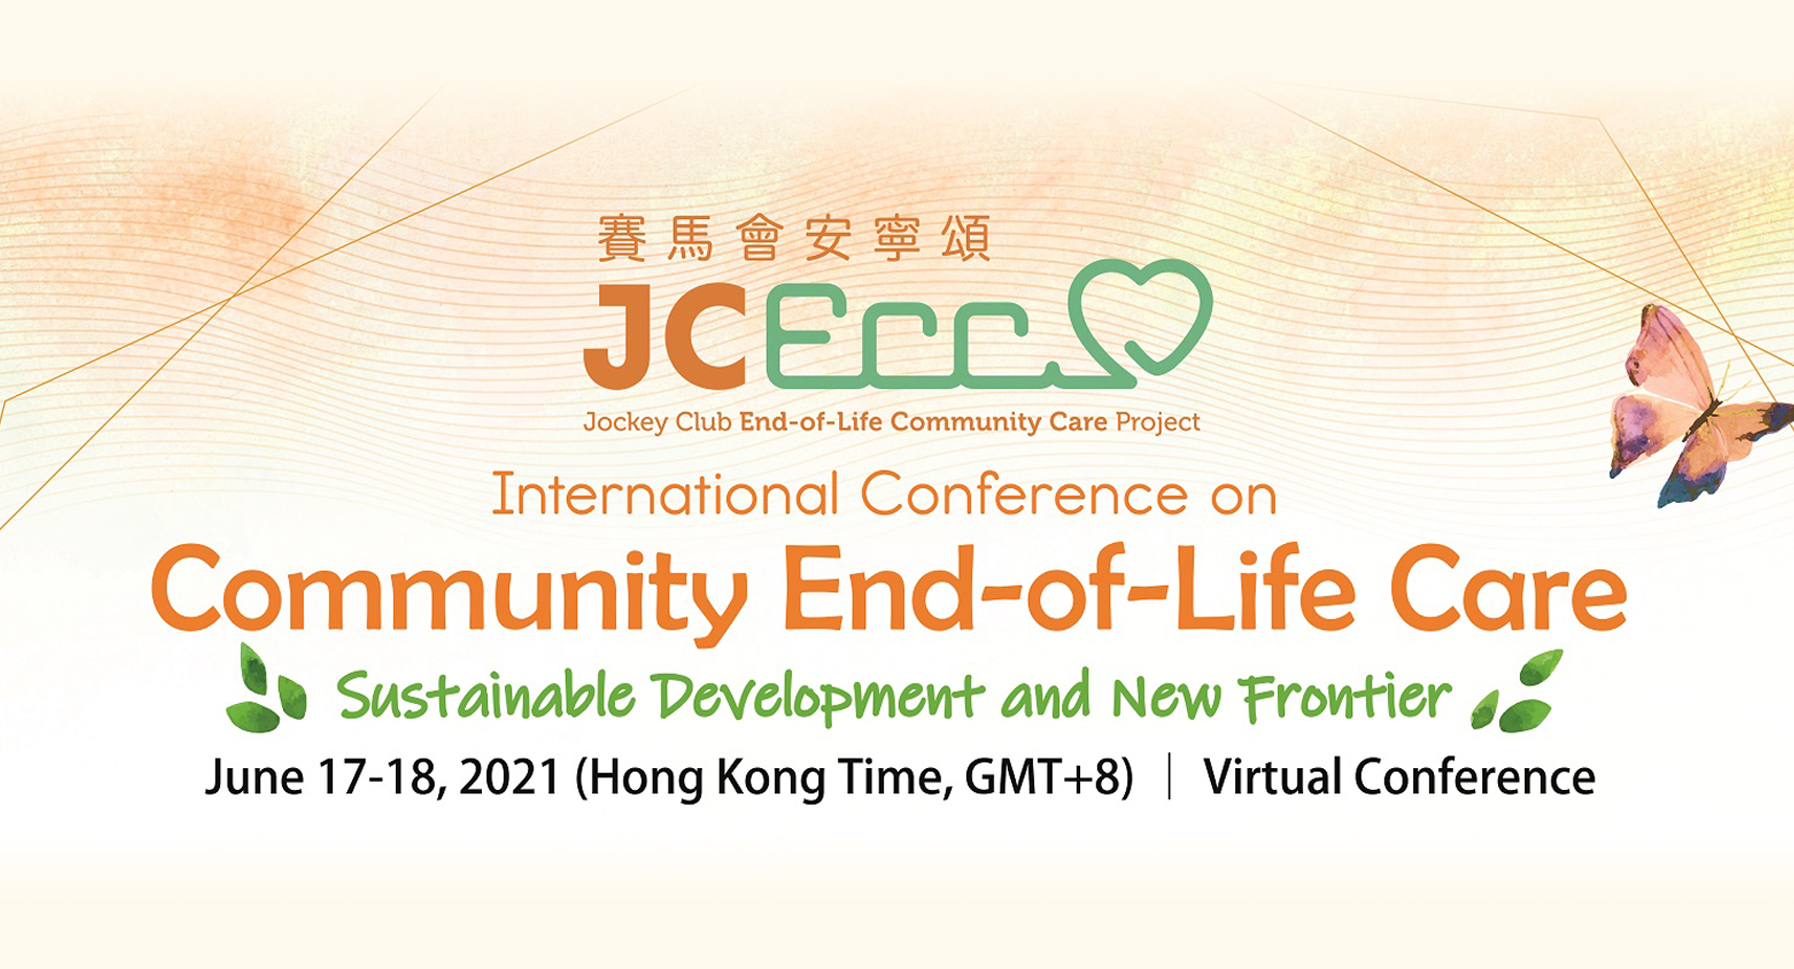 International Conference on Community End-of-Life Care